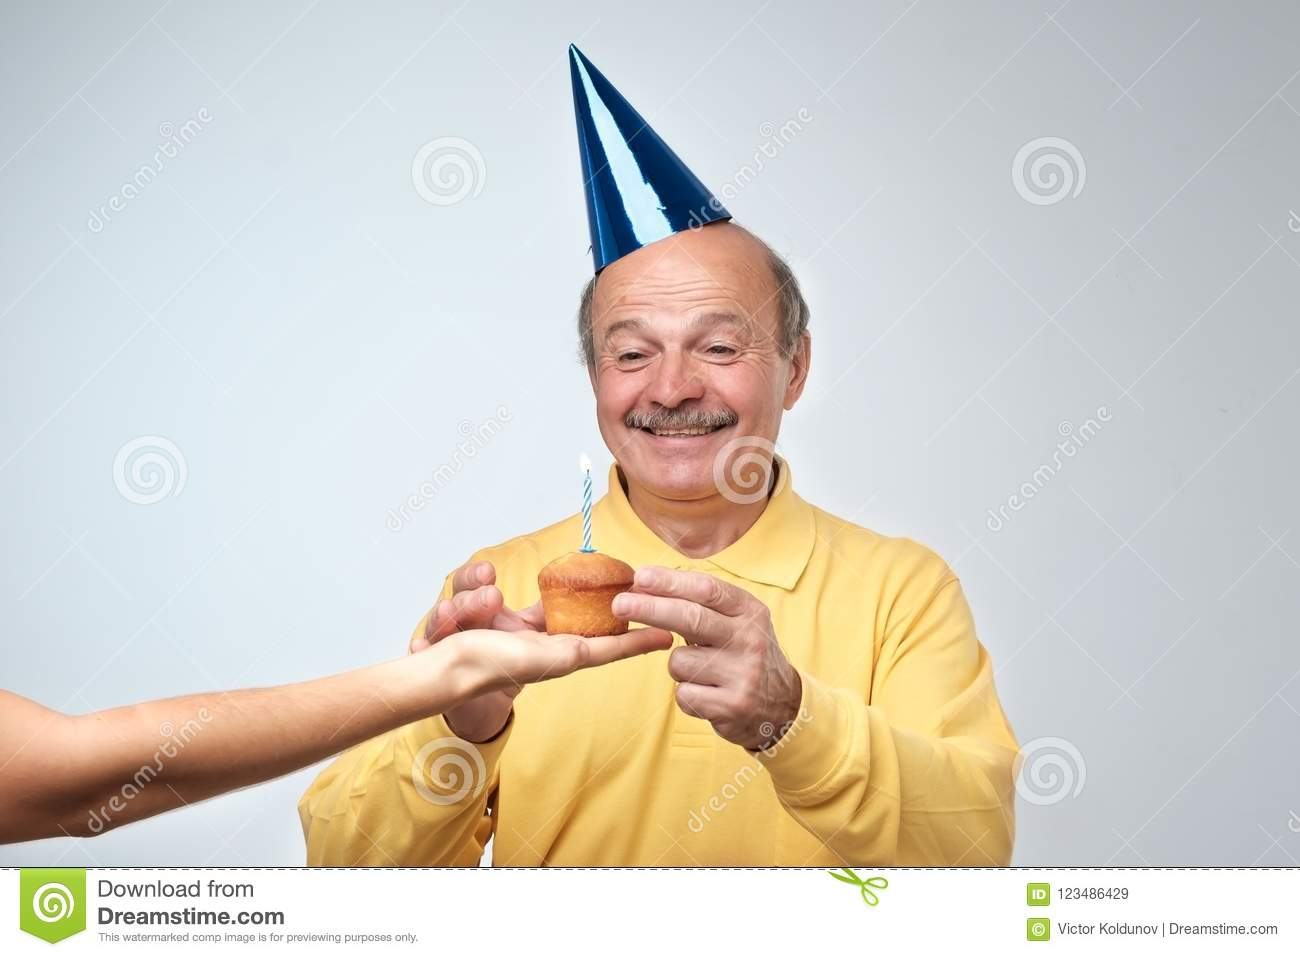 Portrait Of Cheerful Good Looking Birthday Guy With In Funny Cao His Friend Giving Him Cupcake He Is Smiling Broadly Happy Surprise Party